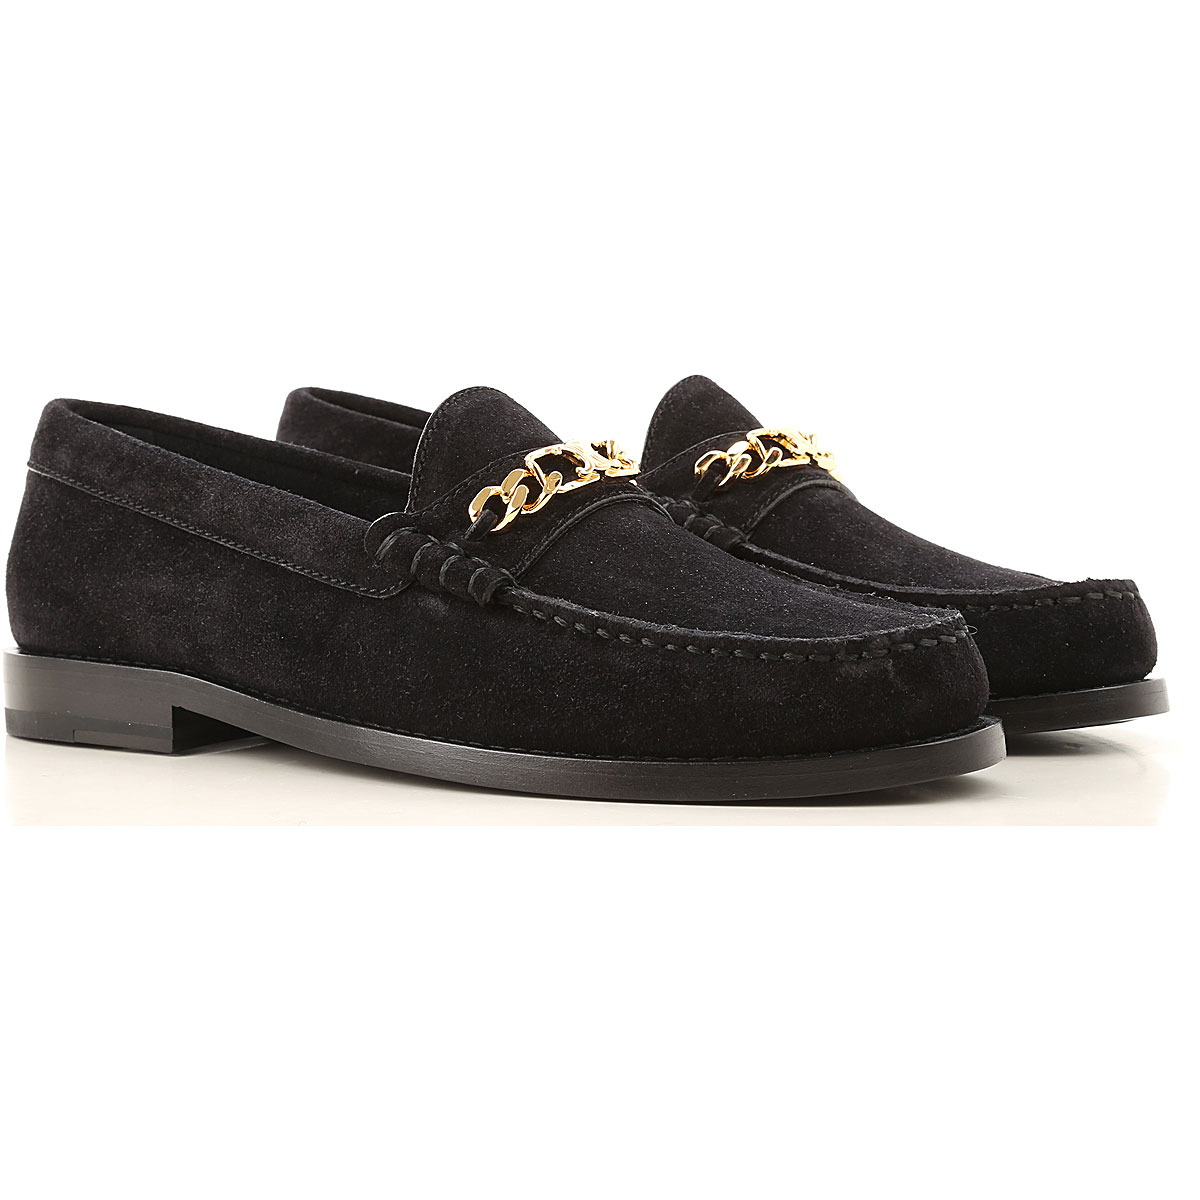 Celine Loafers for Women On Sale, Black, Suede leather, 2019, 10 6 6.5 9